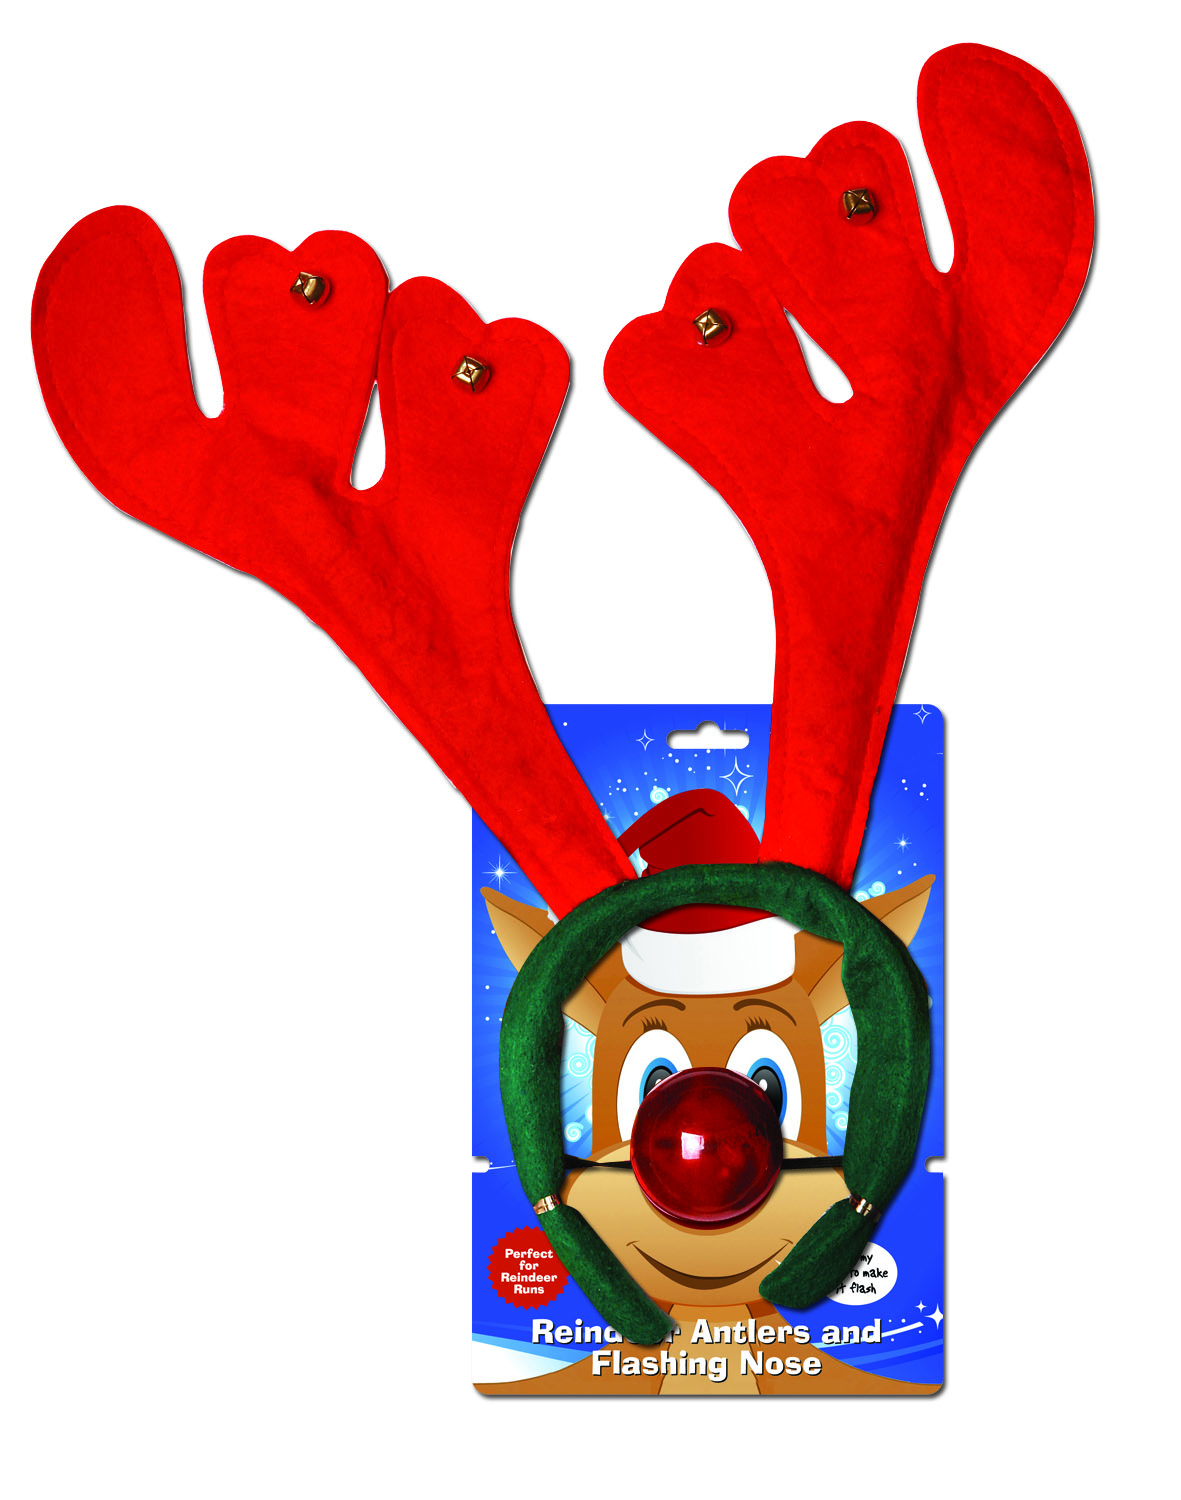 Flashing reindeer clipart banner royalty free download Santa & Reindeer Runs - Care Fundraising Supplies banner royalty free download